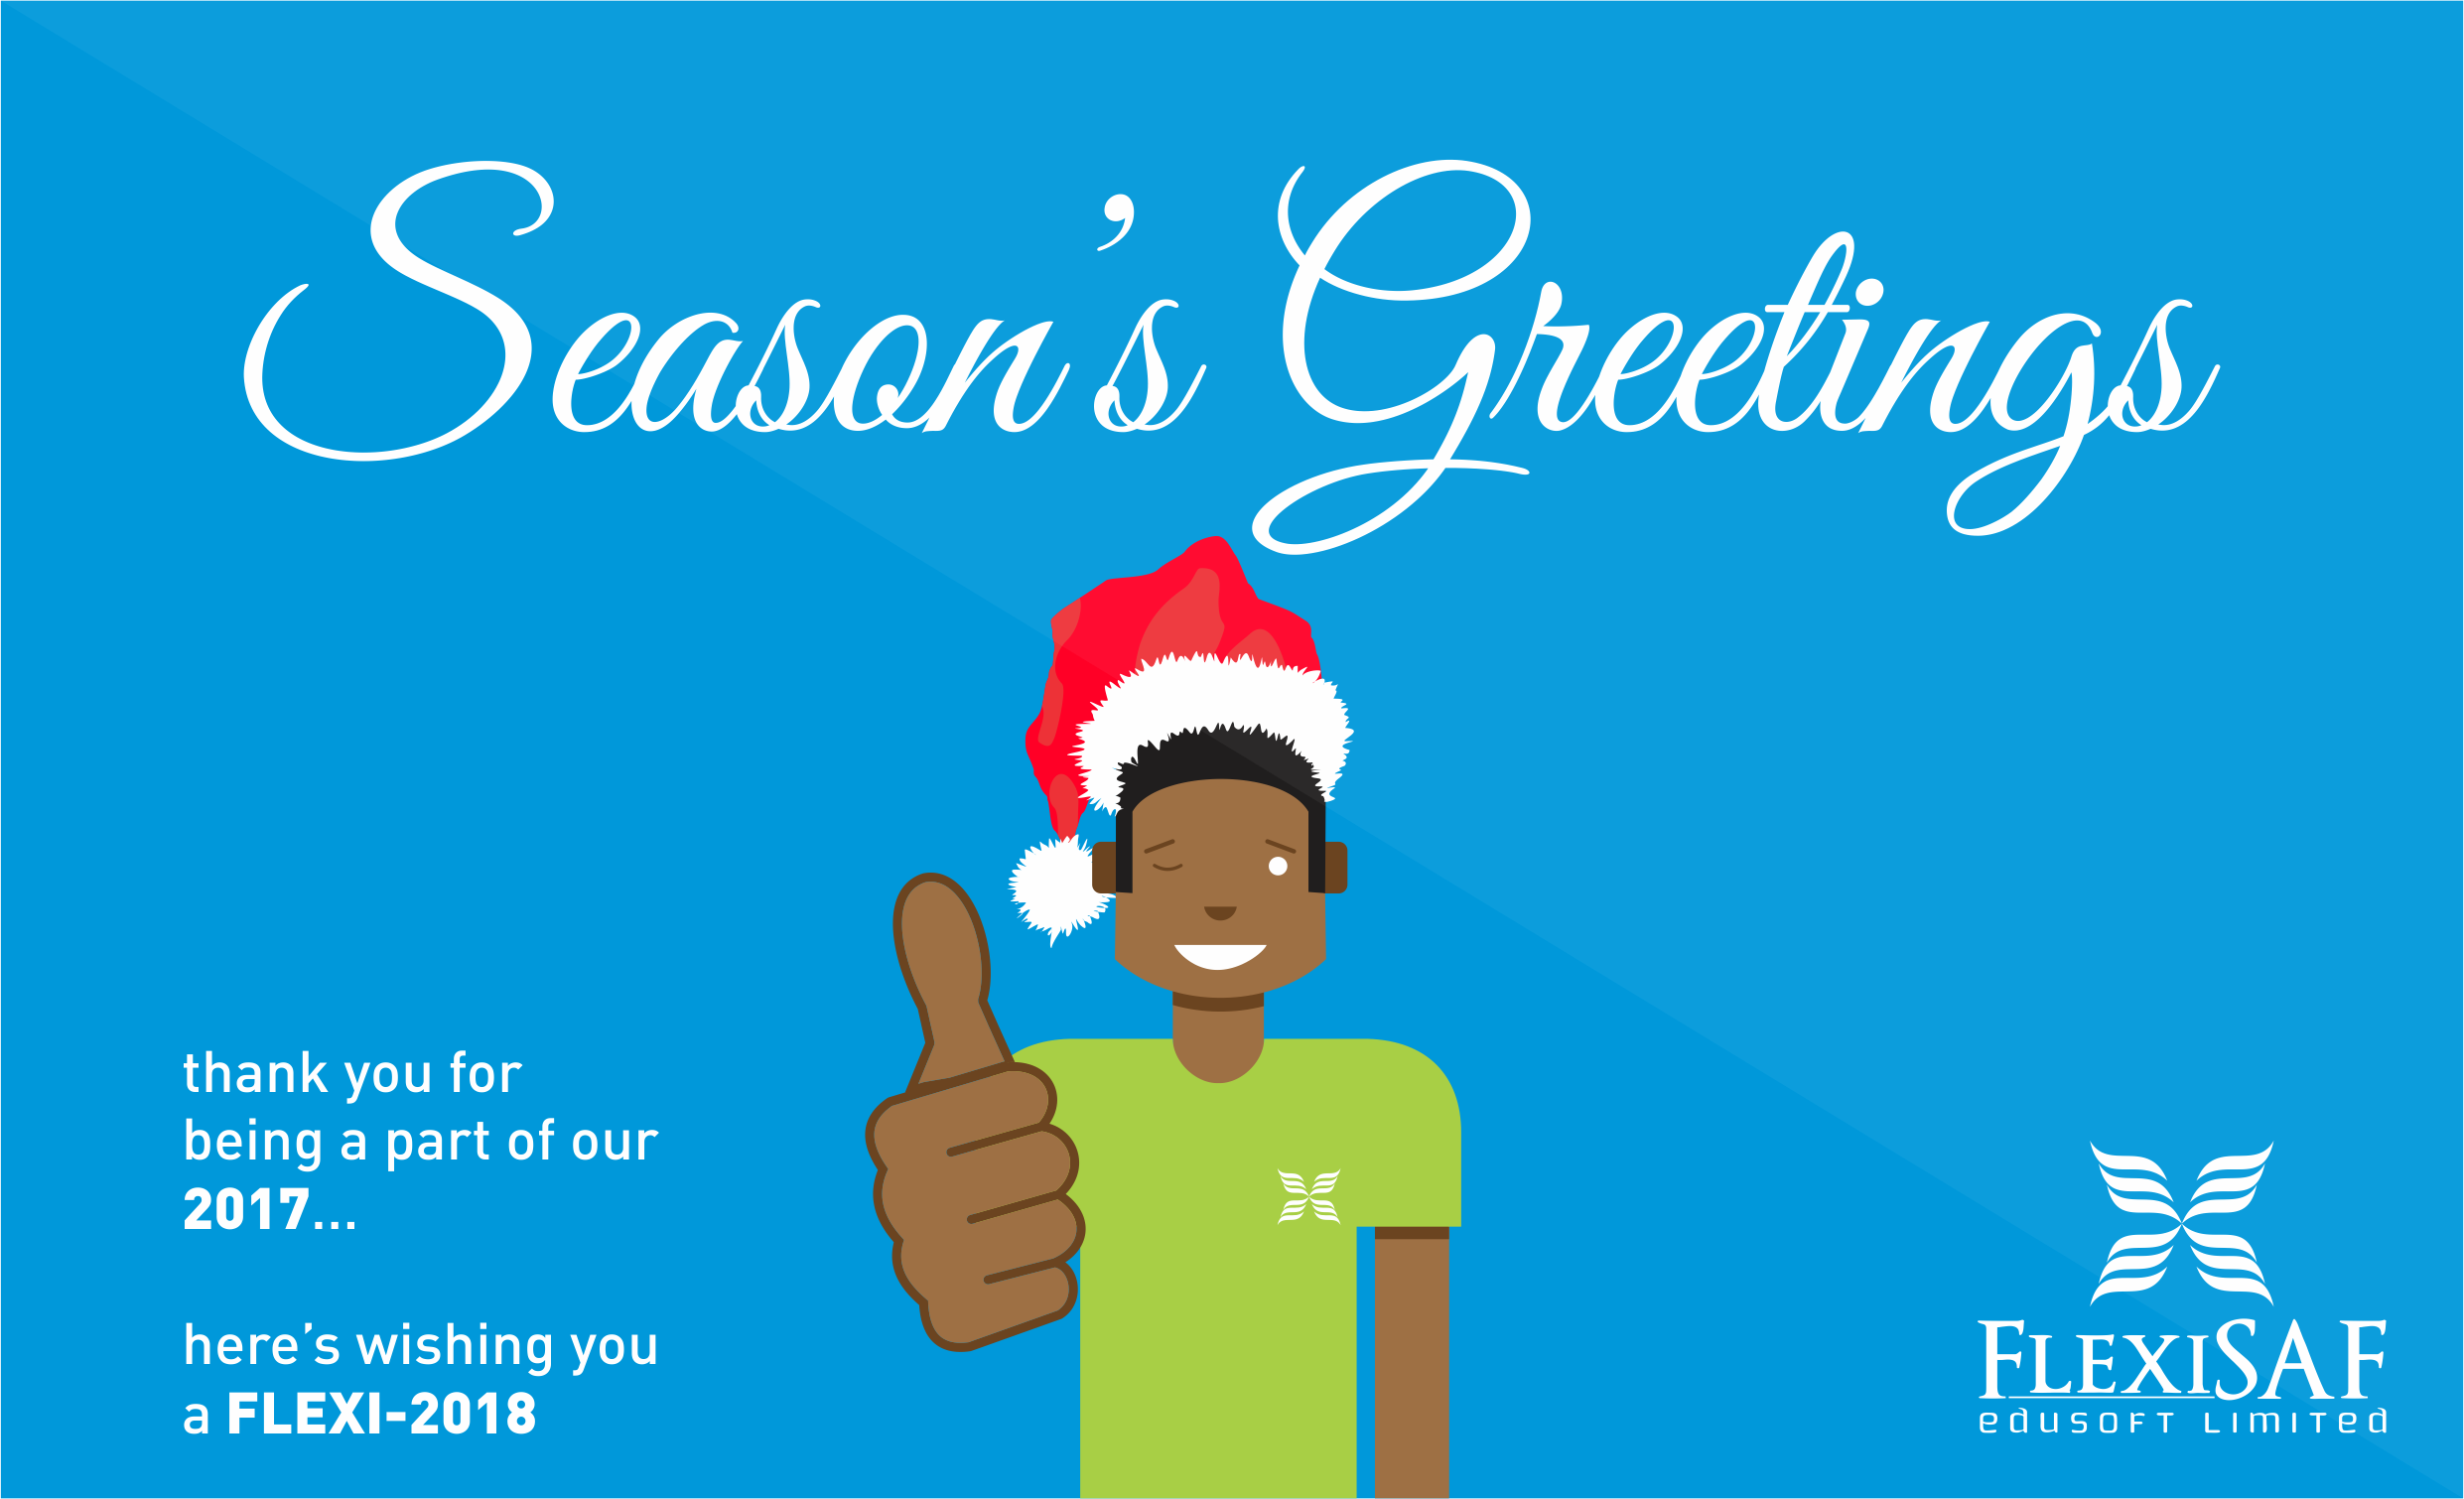 seasons greetings from flexisaf